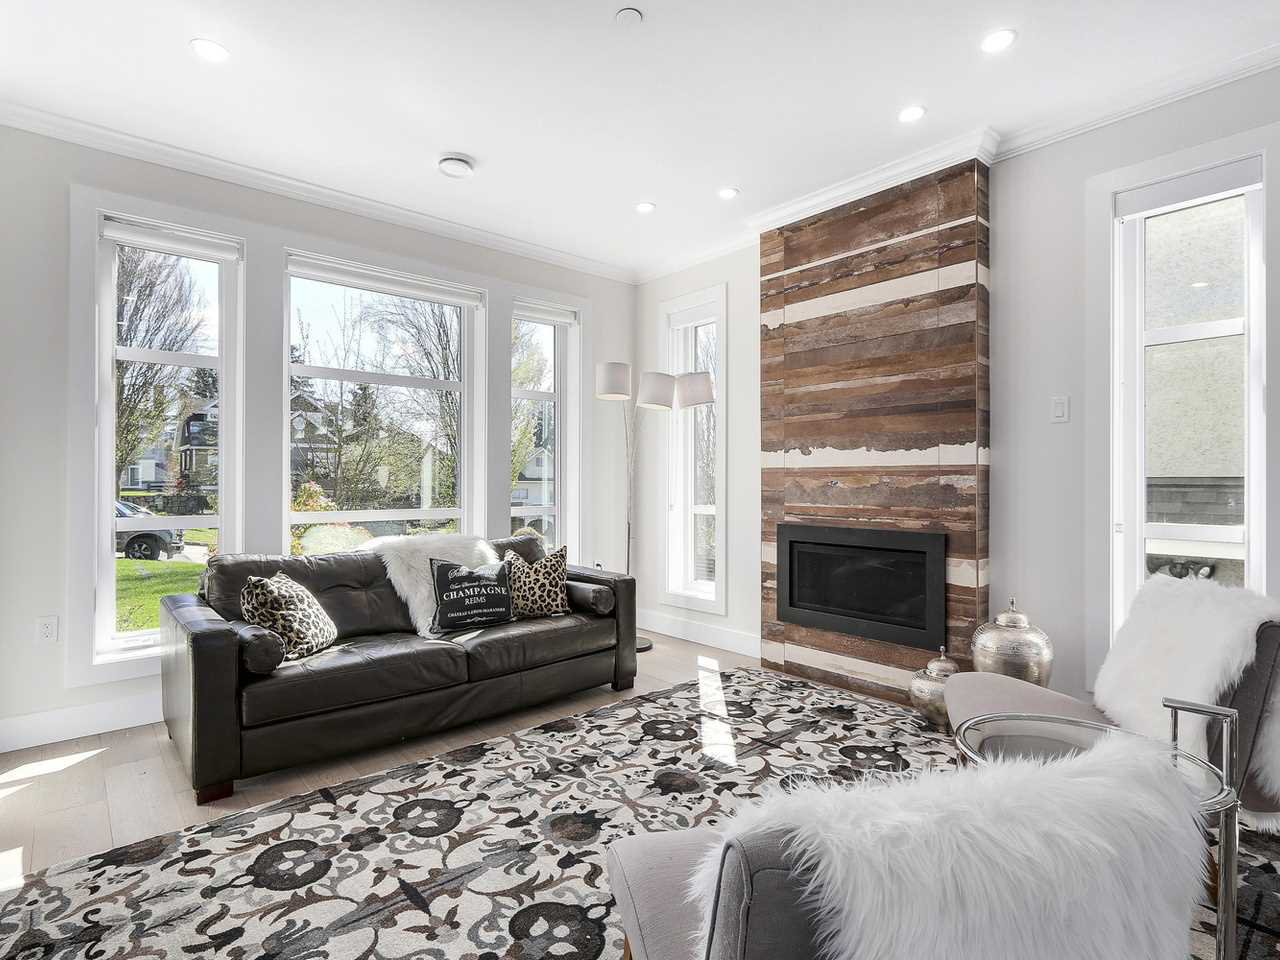 Photo 4: Photos: 3539 ETON STREET in Vancouver: Hastings East House for sale (Vancouver East)  : MLS®# R2159493